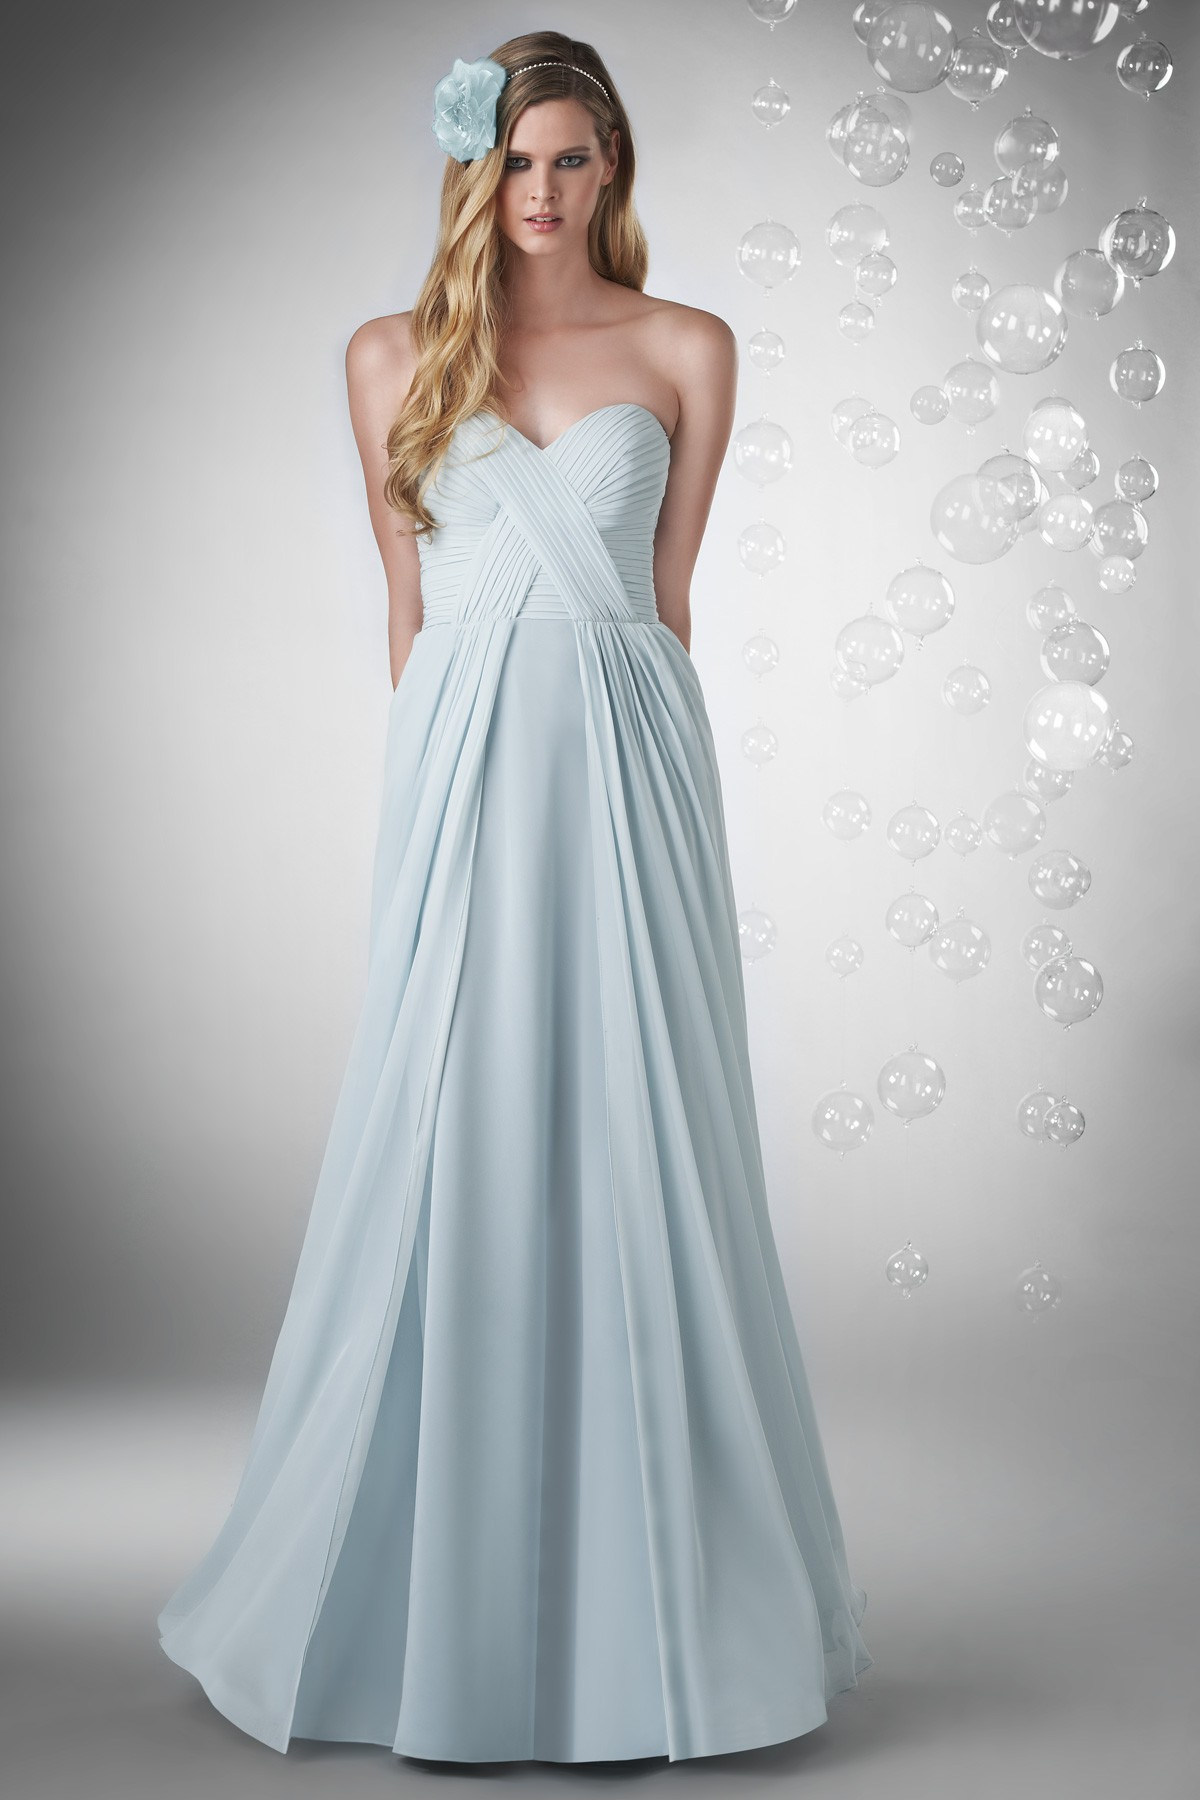 Sweetheart Floor Length Chiffon Blue A Line Bridesmaid Dress P1bj0056